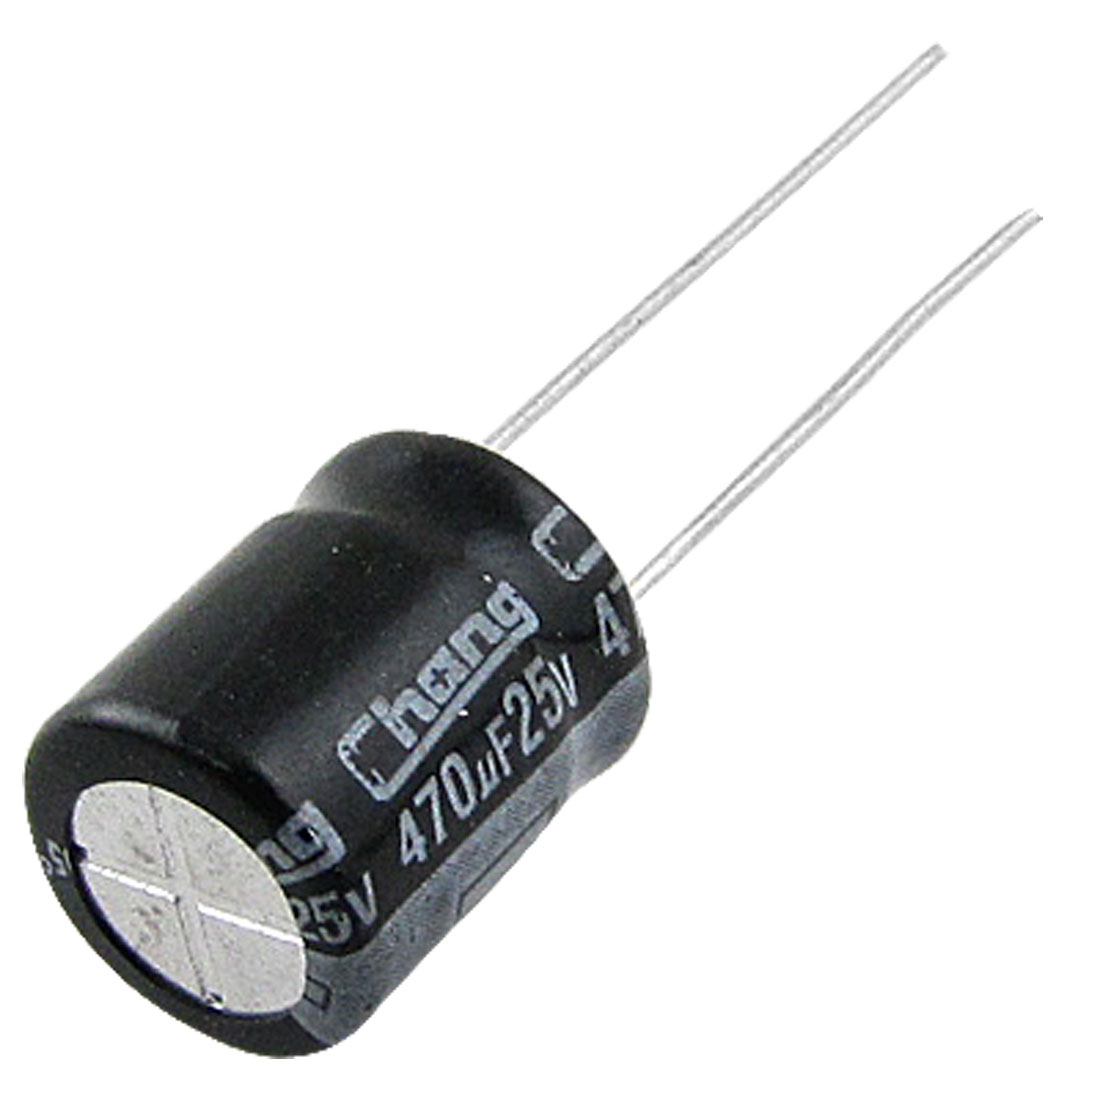 100 Pcs 8x11mm 470uF 25V Aluminum Electrolytic Capacitors